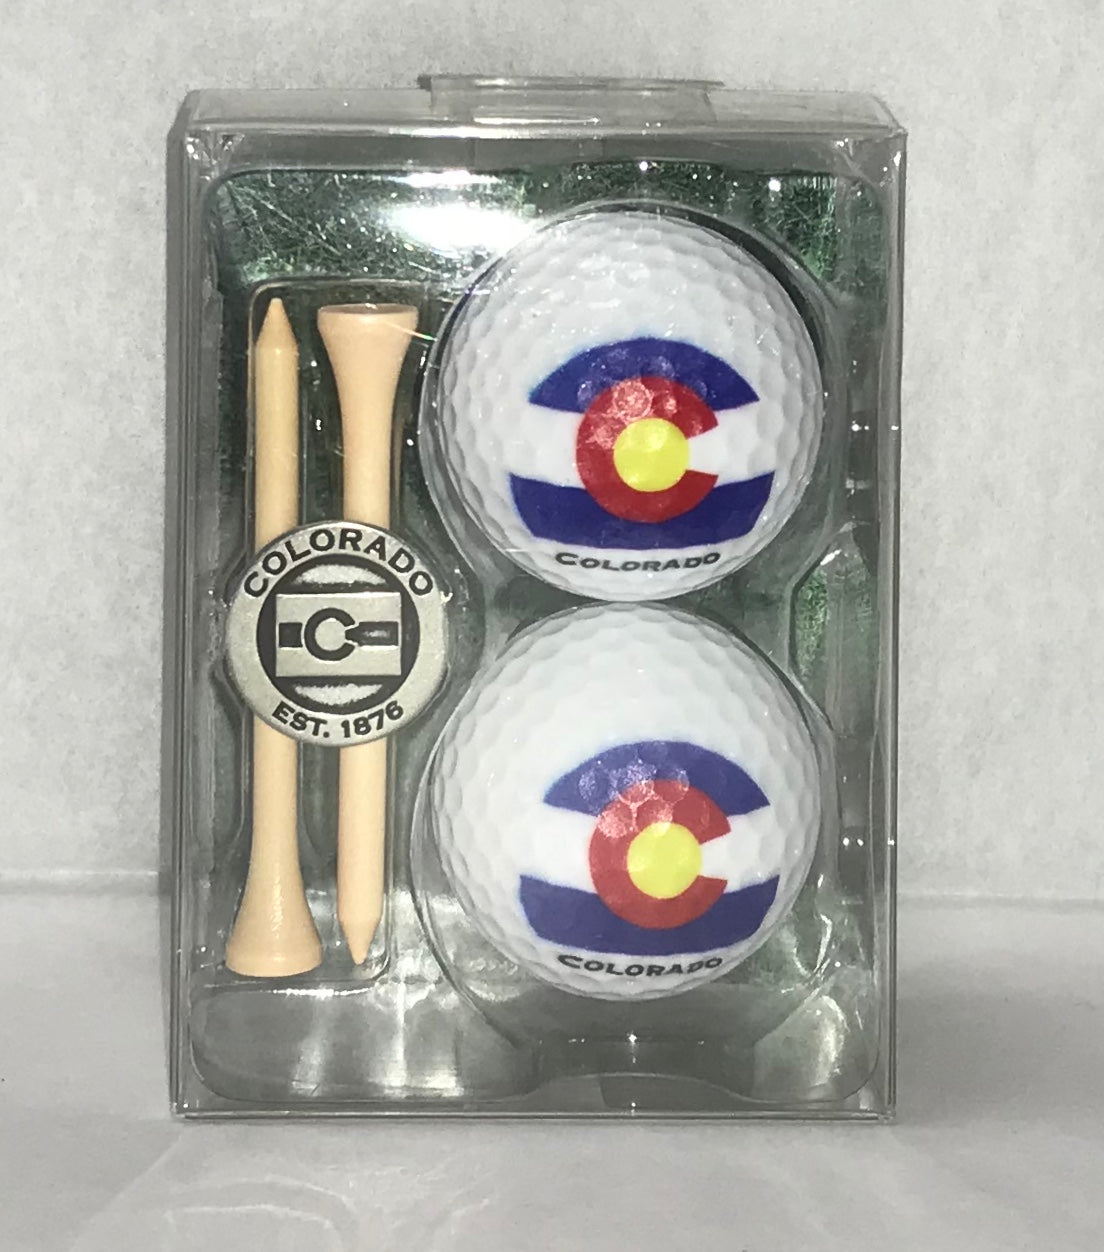 CO Flag Golf Ball Set